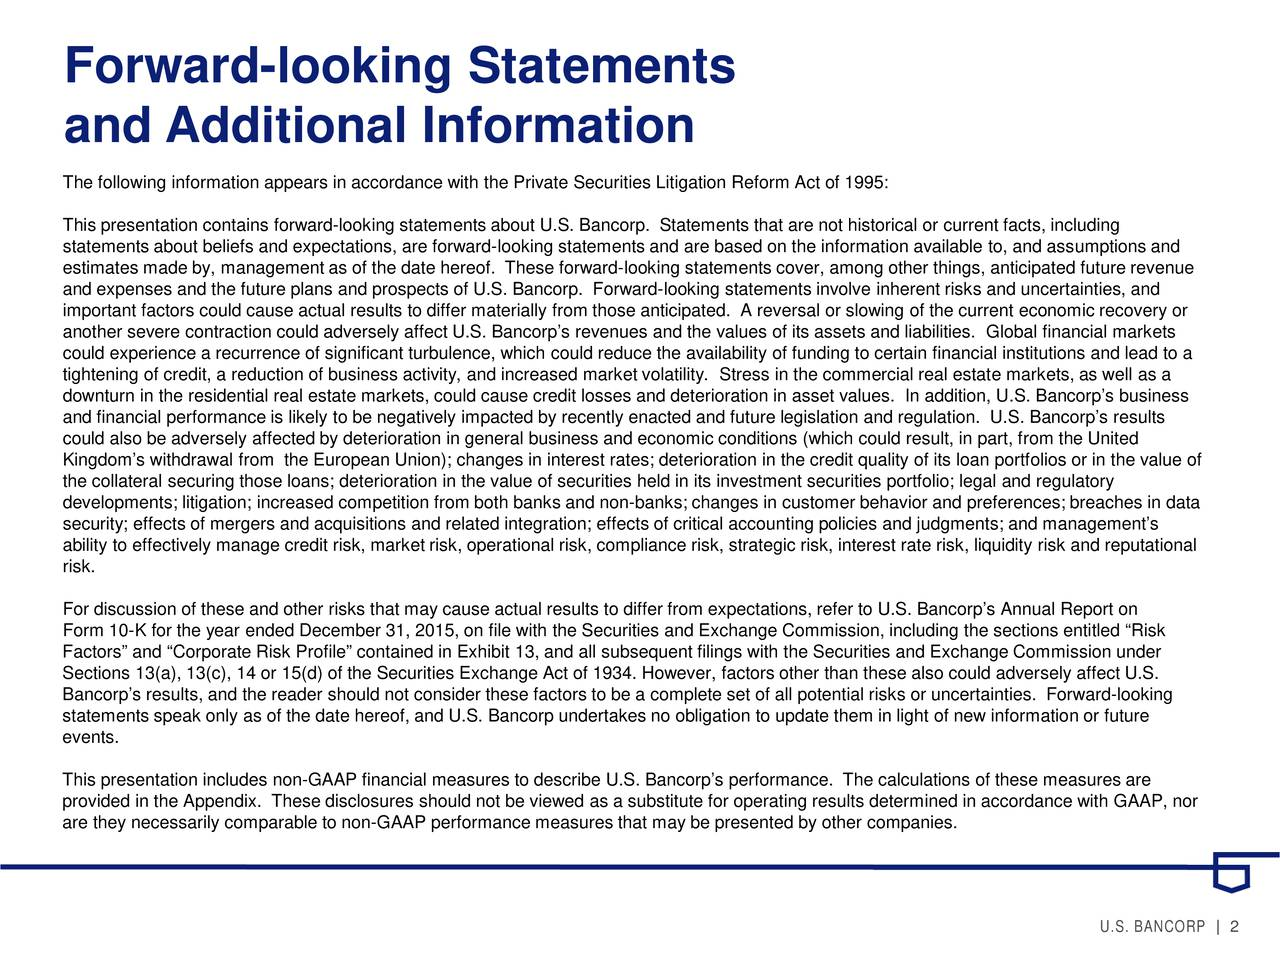 and Additional Information The following information appears in accordance with the Private Securities Litigation Reform Act of 1995: This presentation contains forward-looking statements about U.S. Bancorp. Statements that are not historical or current facts, including statements about beliefs and expectations, are forward-looking statements and are based on the information available to, and assumptions and estimates made by, management as of the date hereof. These forward-looking statements cover, among other things, anticipated future revenue and expenses and the future plans and prospects of U.S. Bancorp. Forward-looking statements involve inherent risks and uncertainties, and important factors could cause actual results to differ materially from those anticipated. A reversal or slowing of the currenteconomic recovery or another severe contraction could adversely affect U.S. Bancorps revenues and the values of its assets and liabilities. Globalfinancial markets could experience a recurrence of significant turbulence, which could reduce the availability of funding to certain financialinstitutions and lead to a tightening of credit, a reduction of business activity, and increased market volatility. Stress in the commercial real estate markets, as well as a downturn in the residential real estate markets, could cause credit losses and deterioration in asset values. In addition, U.S. Bancorps business and financial performance is likely to be negatively impacted by recently enacted and future legislation and regulation. U.S. Bancorps results could also be adversely affected by deterioration in general business and economic conditions (which could result, in part, from the United Kingdoms withdrawal from the European Union); changes in interest rates; deterioration in the credit quality of itsflios or in the value of the collateral securing those loans; deterioration in the value of securities held in its investment securities portfolio; legaland regulatory developments; litigation; increased competition from both banks and non-banks; changes in customer behavior and preferences; breaches in data security; effects of mergers and acquisitions and related integration; effects of critical accounting policies and judgments;and managements ability to effectively manage credit risk, market risk, operational risk, compliance risk, strategic risk, i, liquidity risk and reputational risk. For discussion of these and other risks that may cause actual results to differ from expectations, refer to U.S. Bancorps Annual Report on Form 10-K for the year ended December 31, 2015, on file with the Securities and Exchange Commission, including the sections enttiled Risk Factors and Corporate Risk Profile contained in Exhibit 13, and all subsequent filings with the Securities and Exchange Commission under Sections 13(a), 13(c), 14 or 15(d) of the Securities Exchange Act of 1934. However, factors other than these also could adversely affect U.S. Bancorps results, and the reader should not consider these factors to be a complete set of all potential risks or uncertainites. Forward-looking statements speak only as of the date hereof, and U.S. Bancorp undertakes no obligation to update them in light of new inn or future events. This presentation includes non-GAAP financial measures to describe U.S. Bancorps performance. The calculations of these measures are provided in the Appendix. These disclosures should not be viewed as a substitute for operating results determined in accordance with GAAP, nor are they necessarily comparable to non-GAAP performance measures that may be presented by other companies. U.S. BANCORP | 2